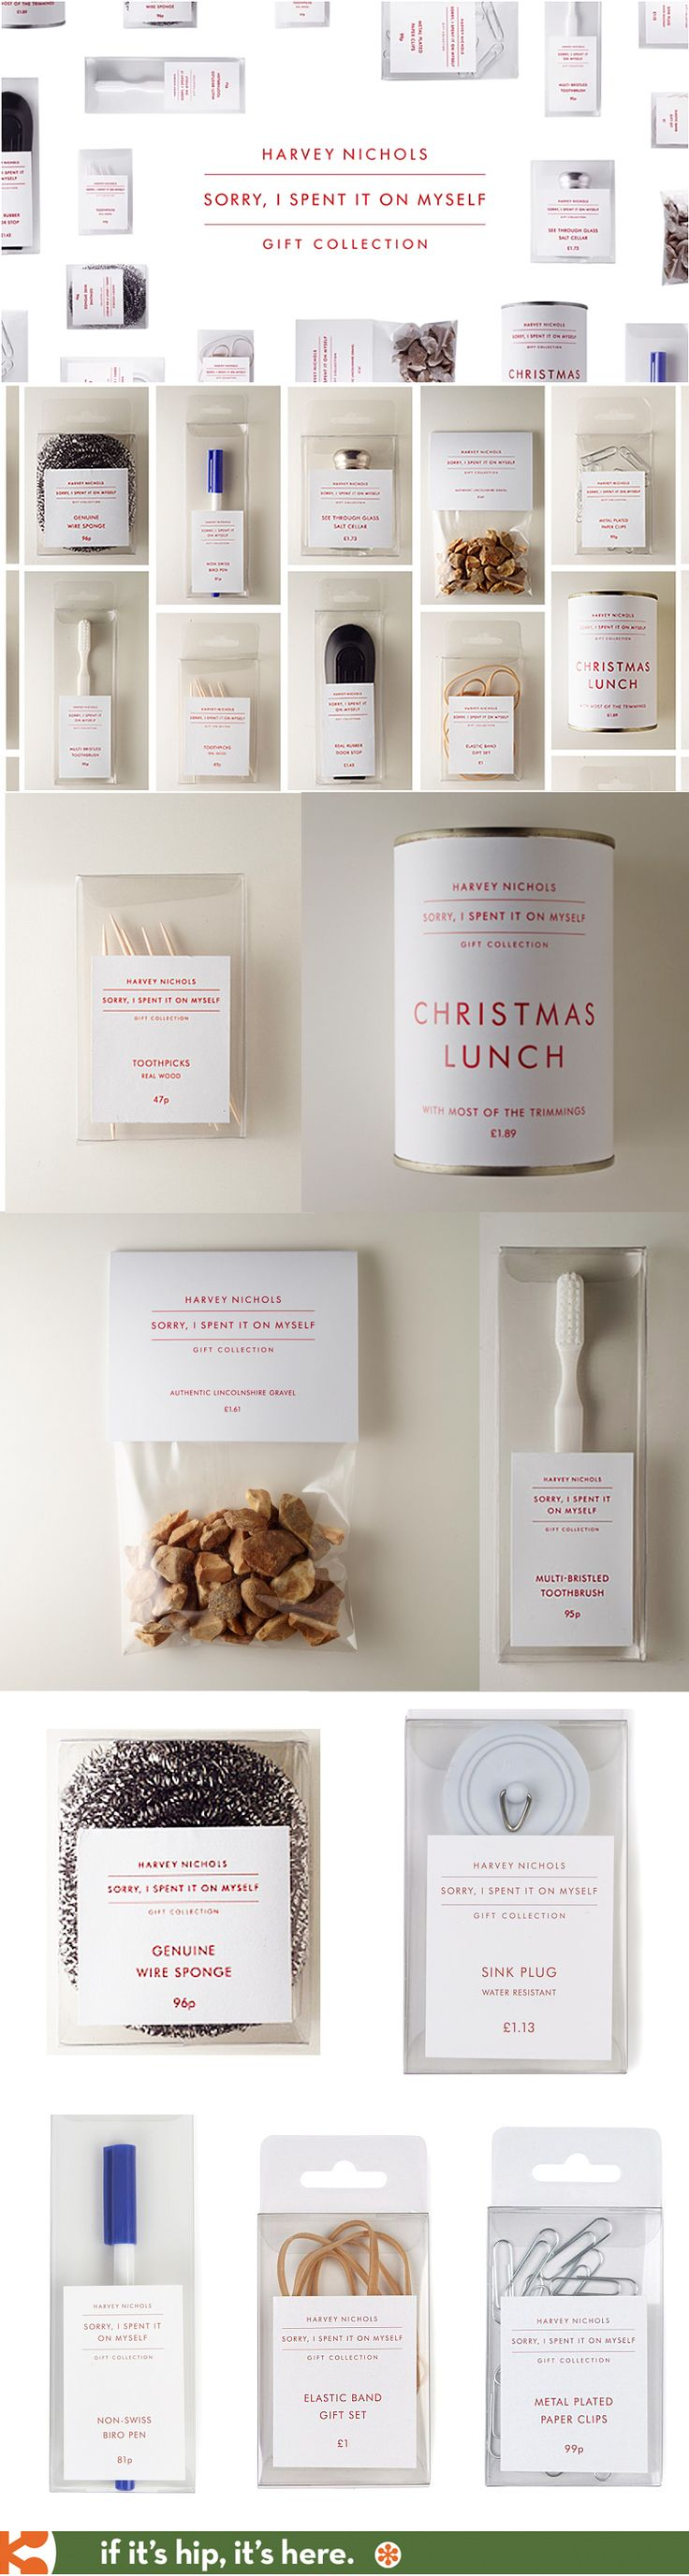 "Did you see this #Christmas Packaged goods from Harvey Nichols' ""Sorry, I spent it on myself"" gift collection PD"